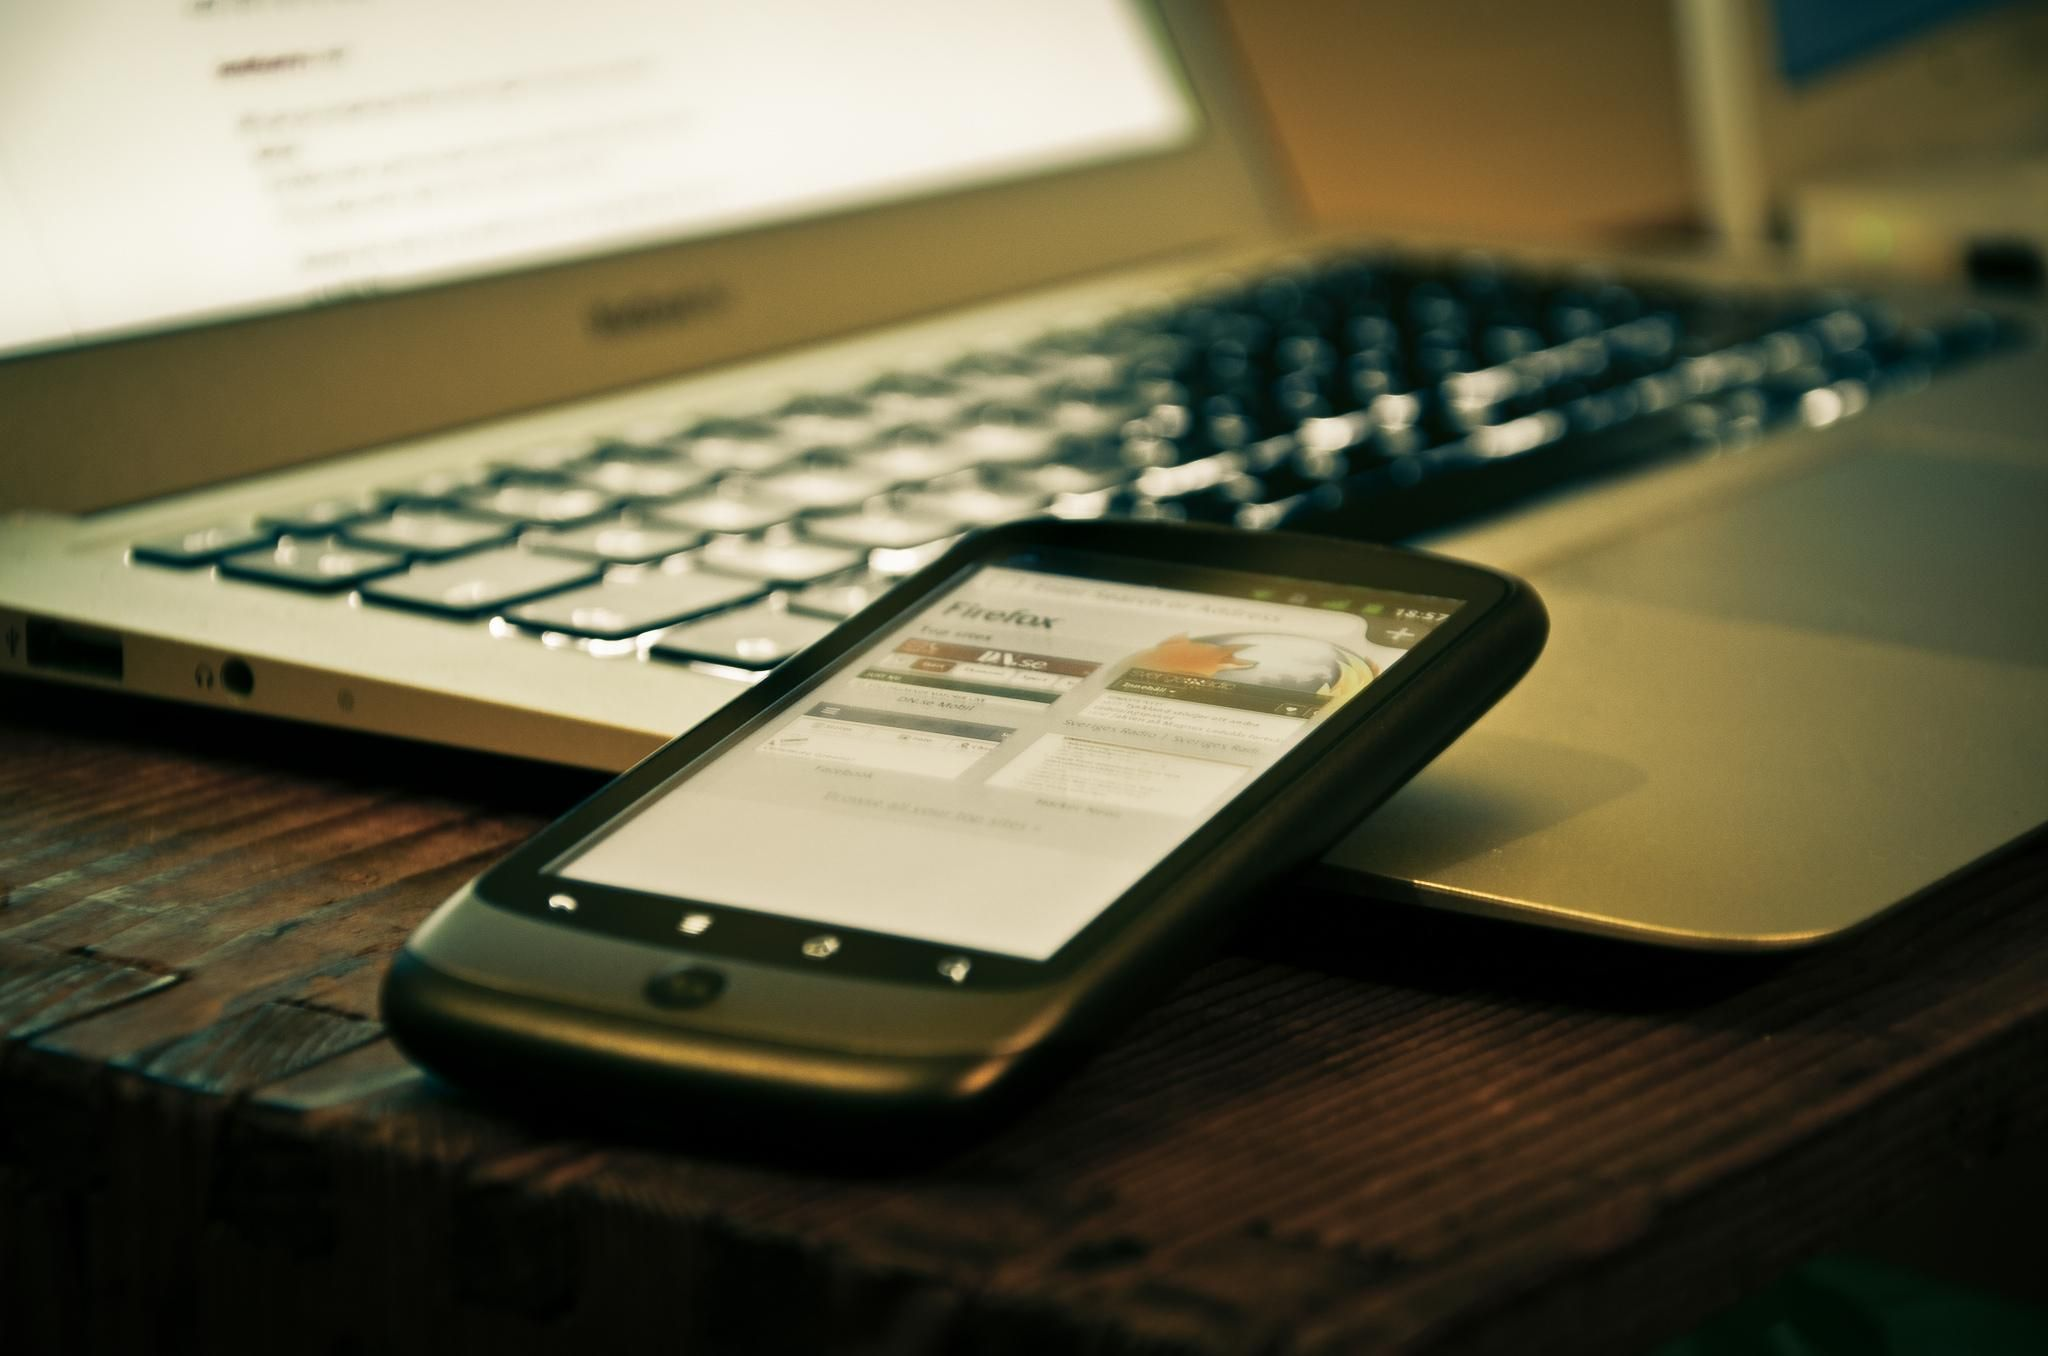 Get your business on a smartphone by hiring us for your